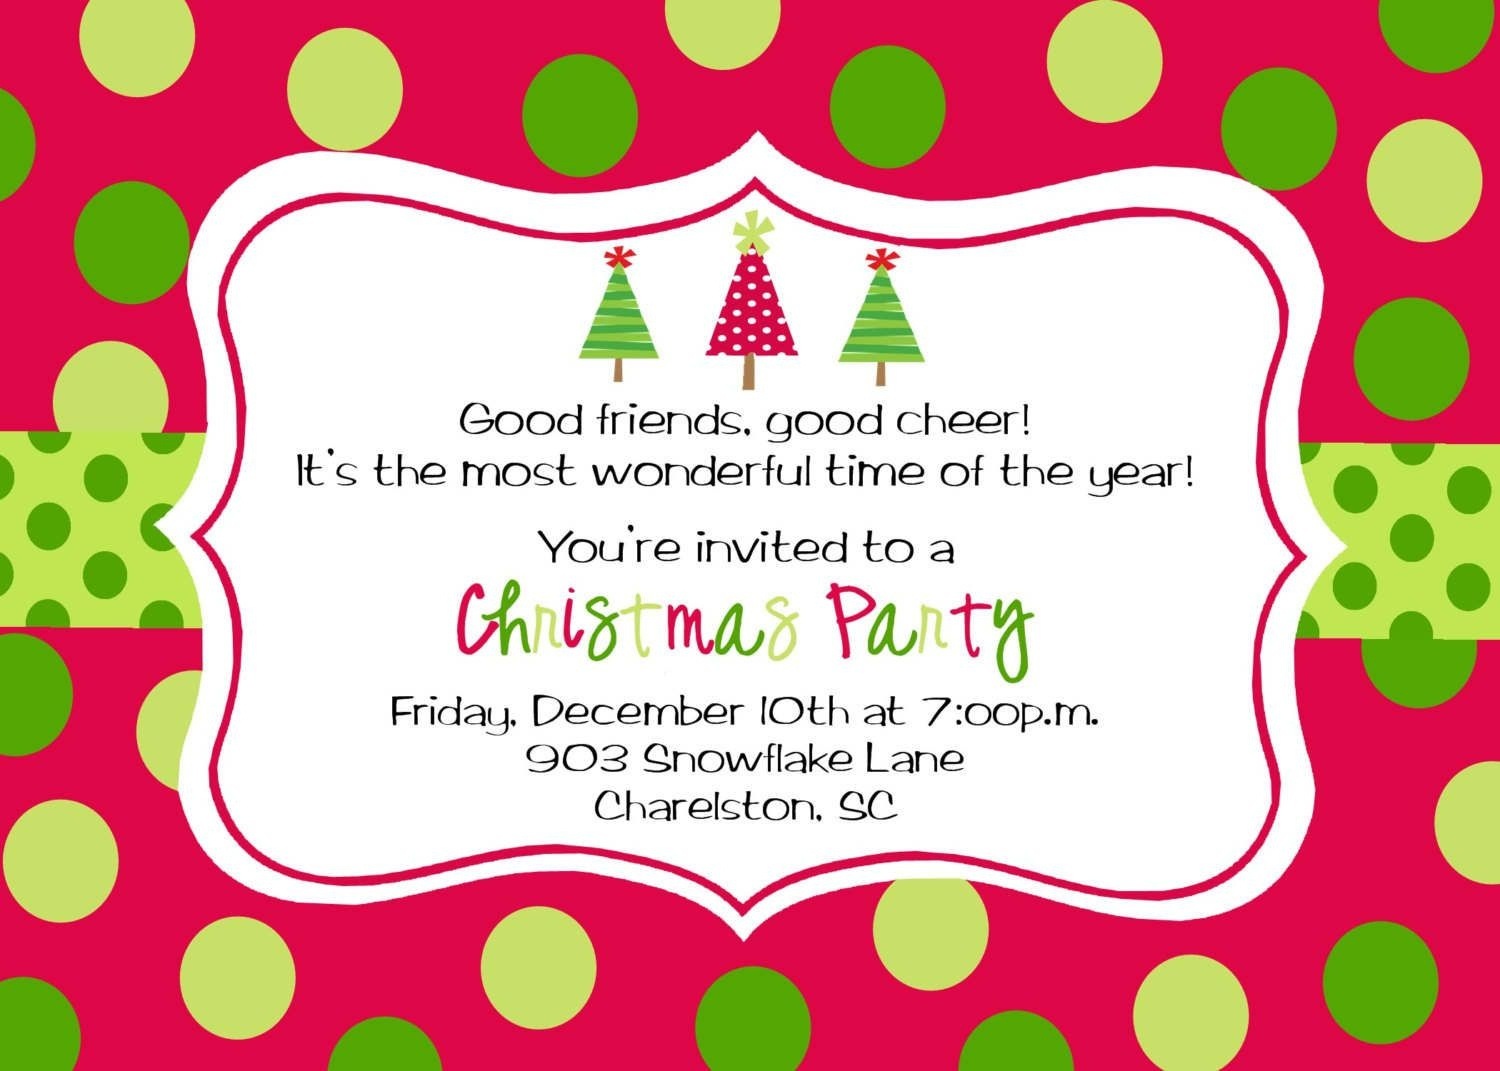 Party Invitation Template Online Free | It's Christmas Time - Free Online Printable Christmas Party Invitations